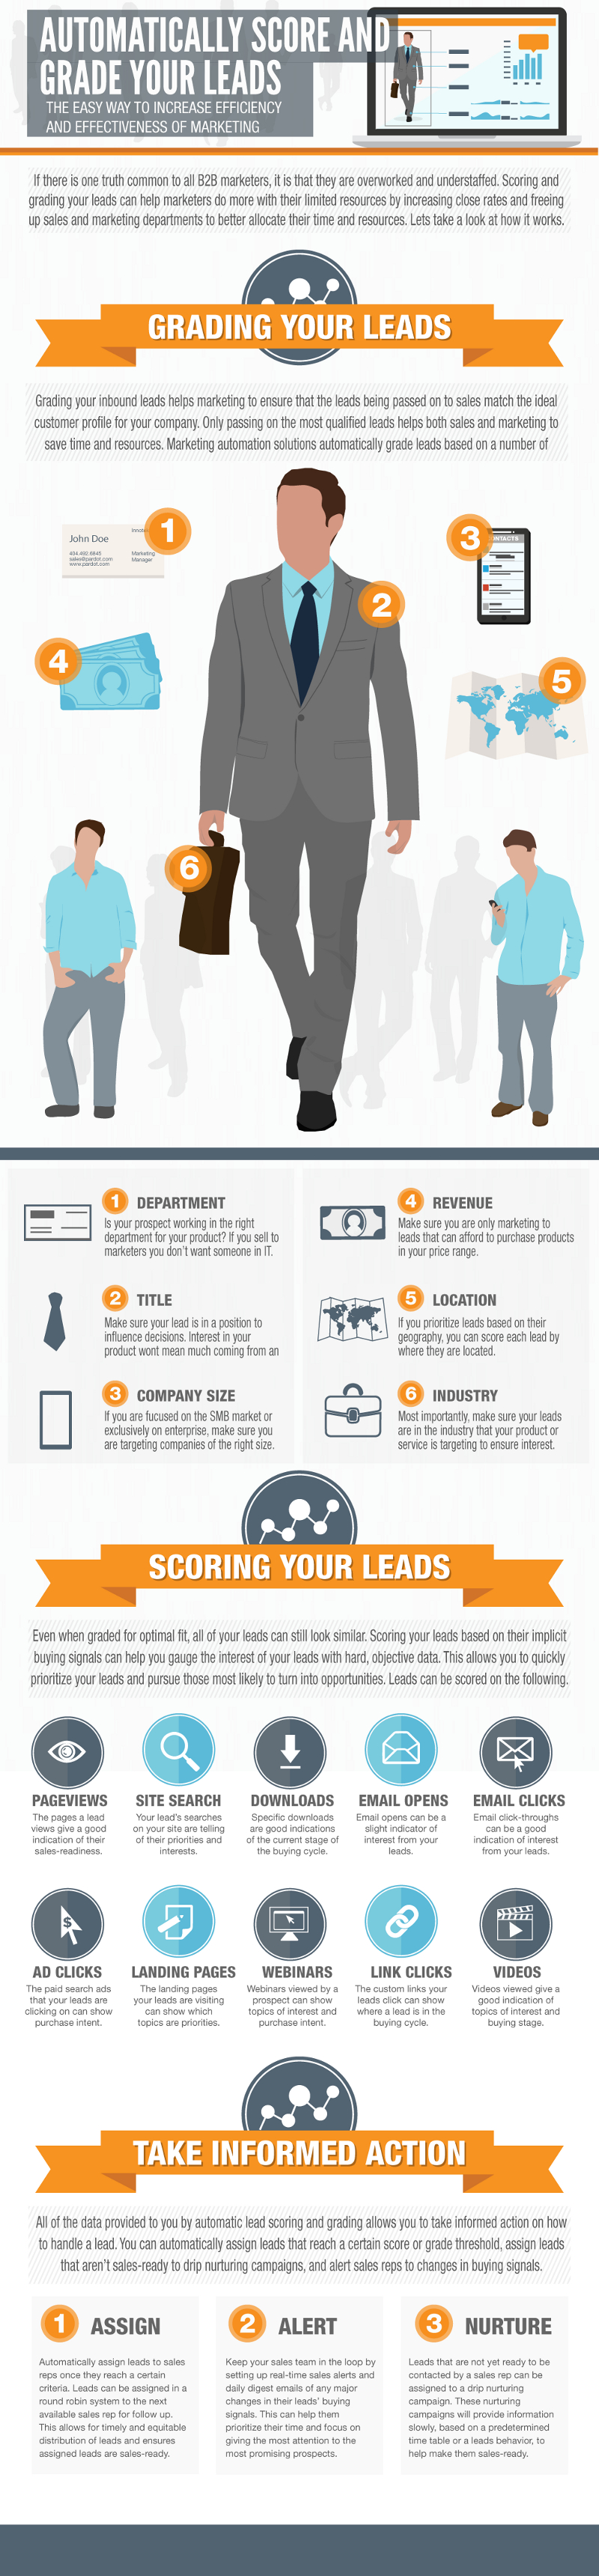 Ways-to-Increase-Lead-Generation